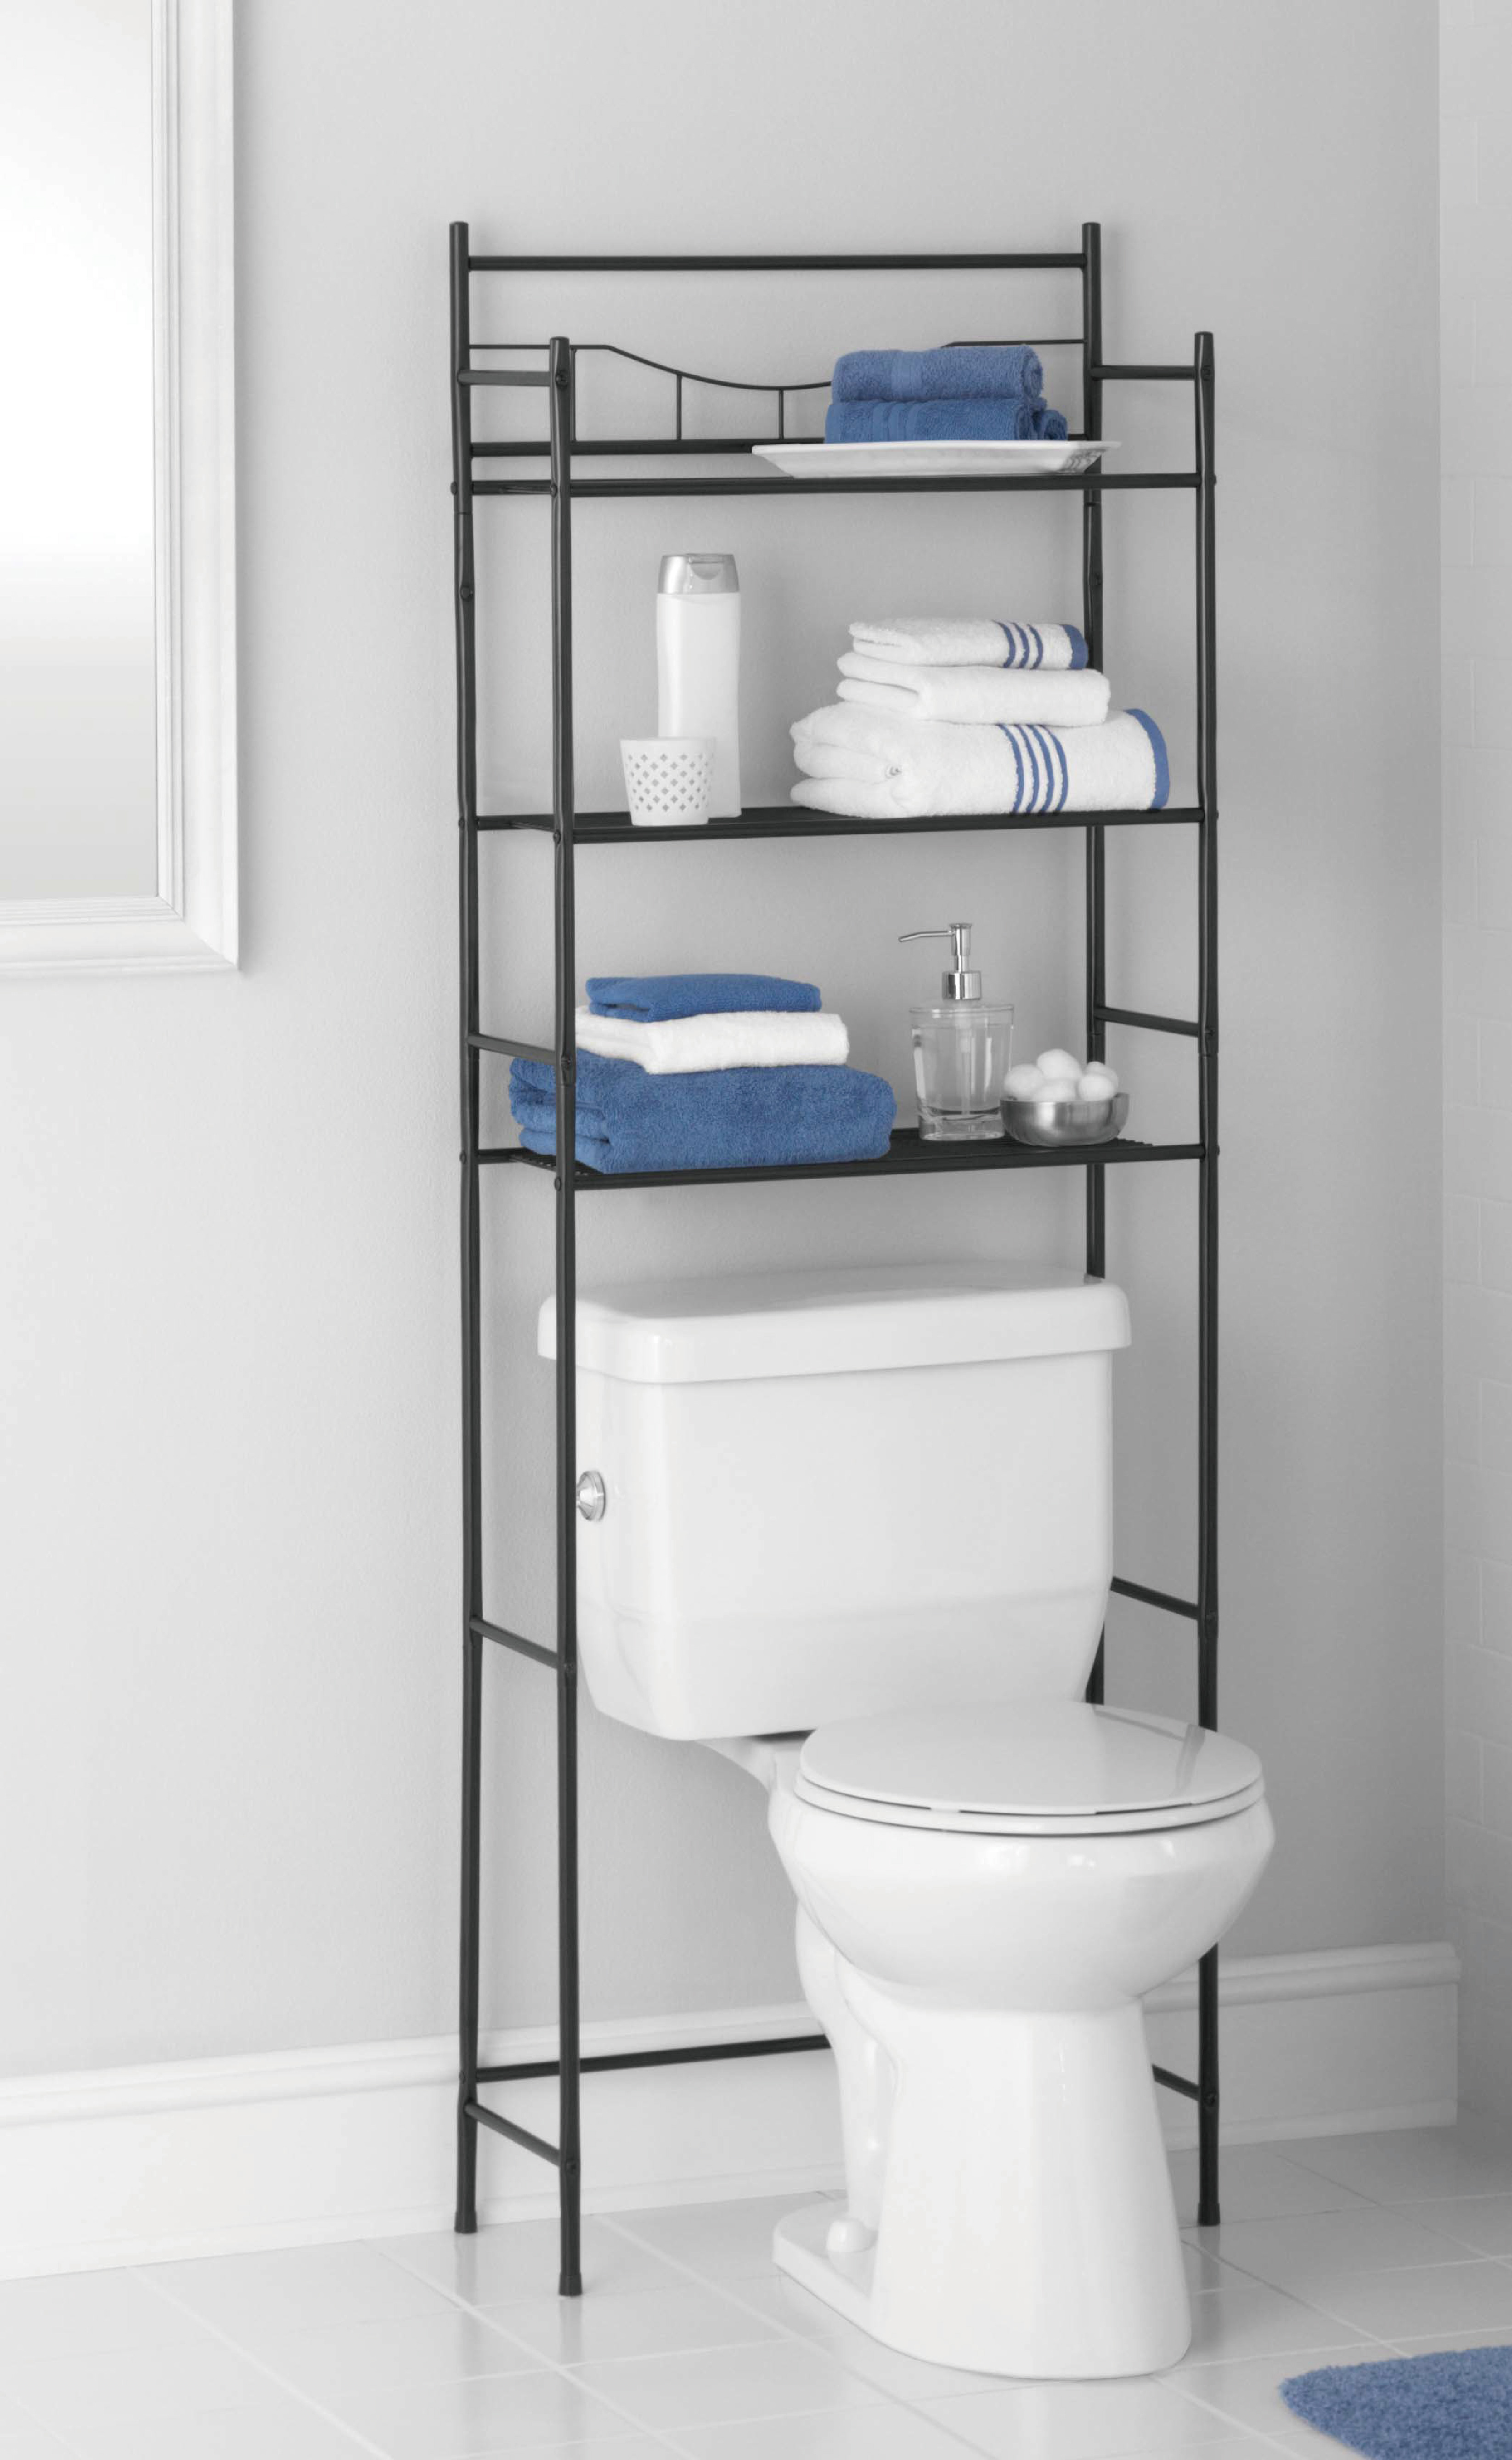 Mainstays 3-Shelf Bathroom Space Saver, Oil-Rubbed Bronze/Black ... for Bathroom Shelves As Seen On Tv  18lpqdu